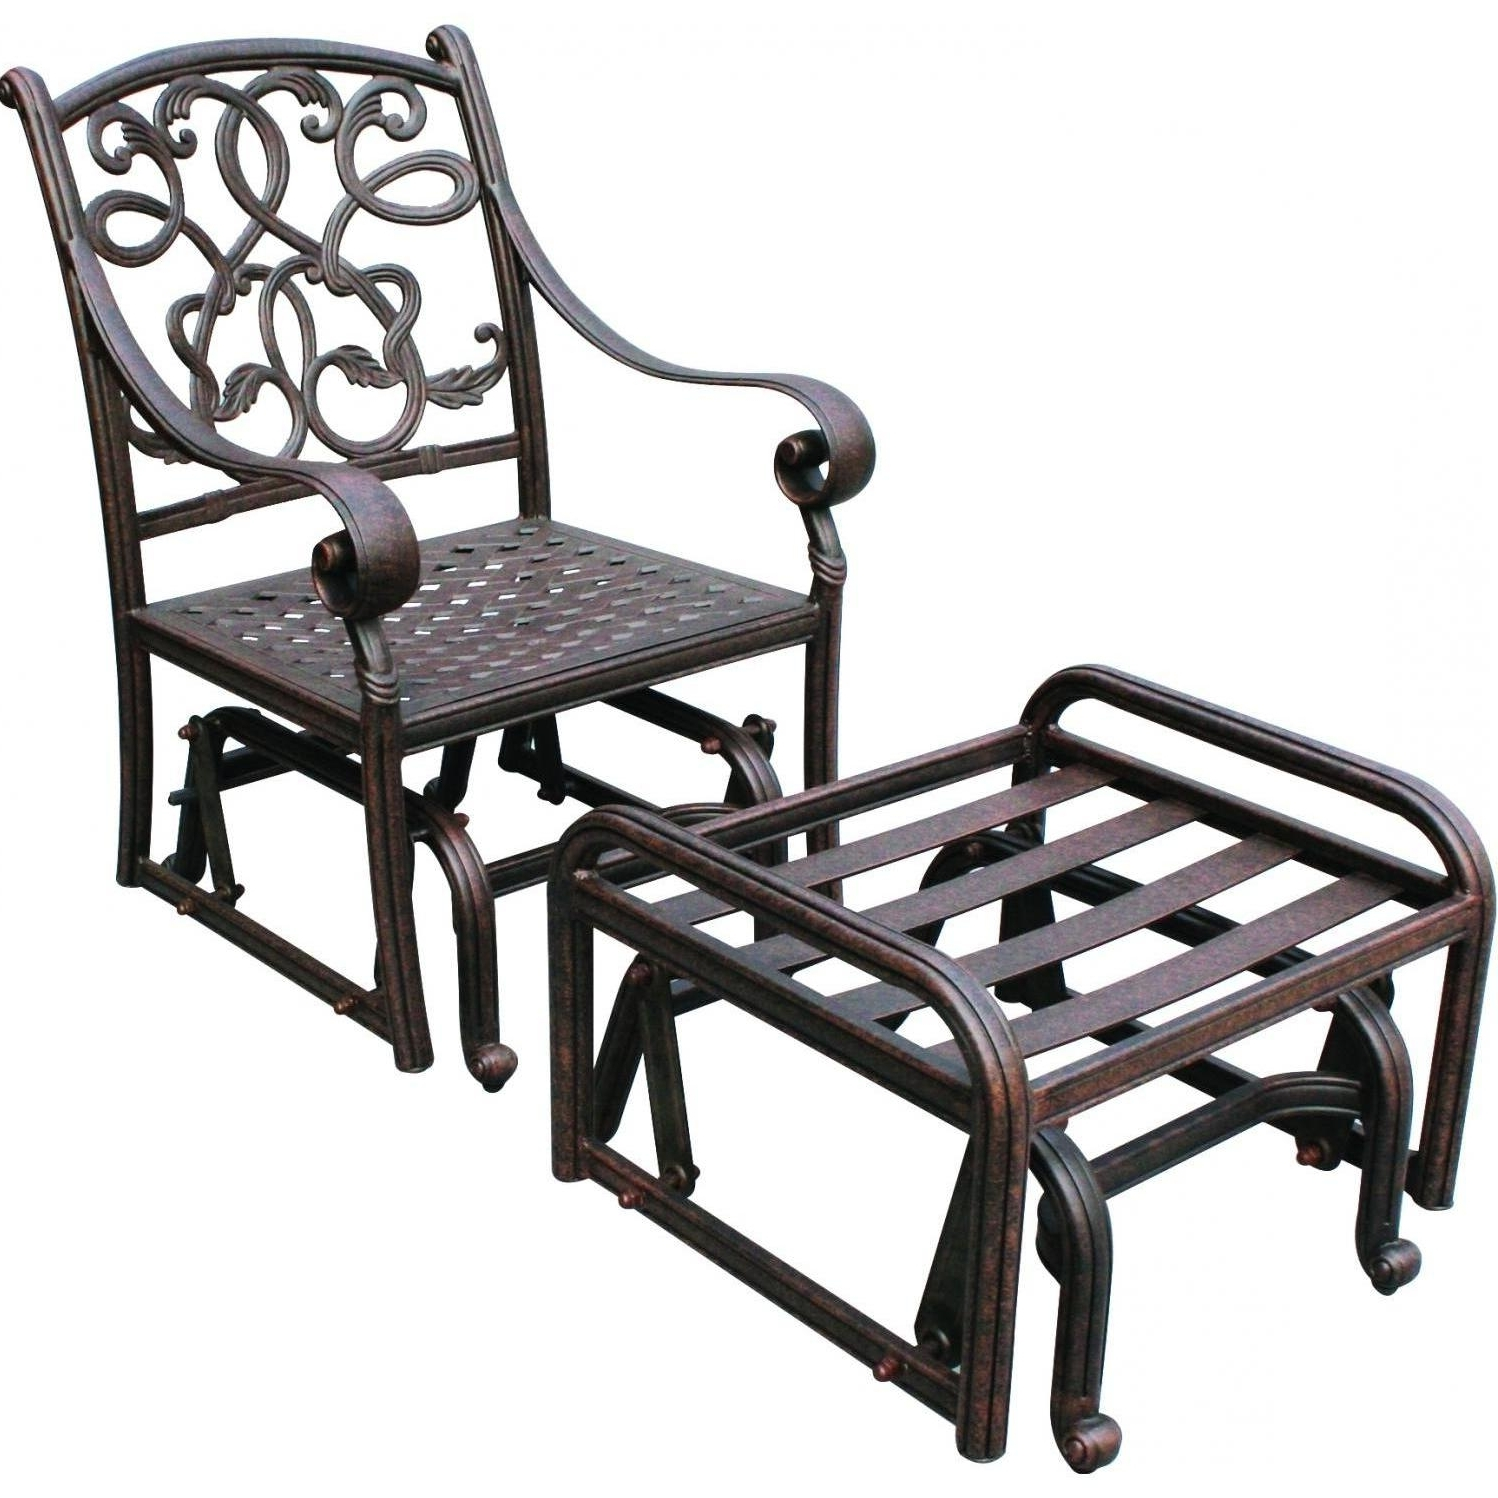 Widely Used Patio Rocking Chairs With Ottoman Throughout Chair : Rocker Plans Wicker Resin Lounge Sling Patio Furniture (View 9 of 20)